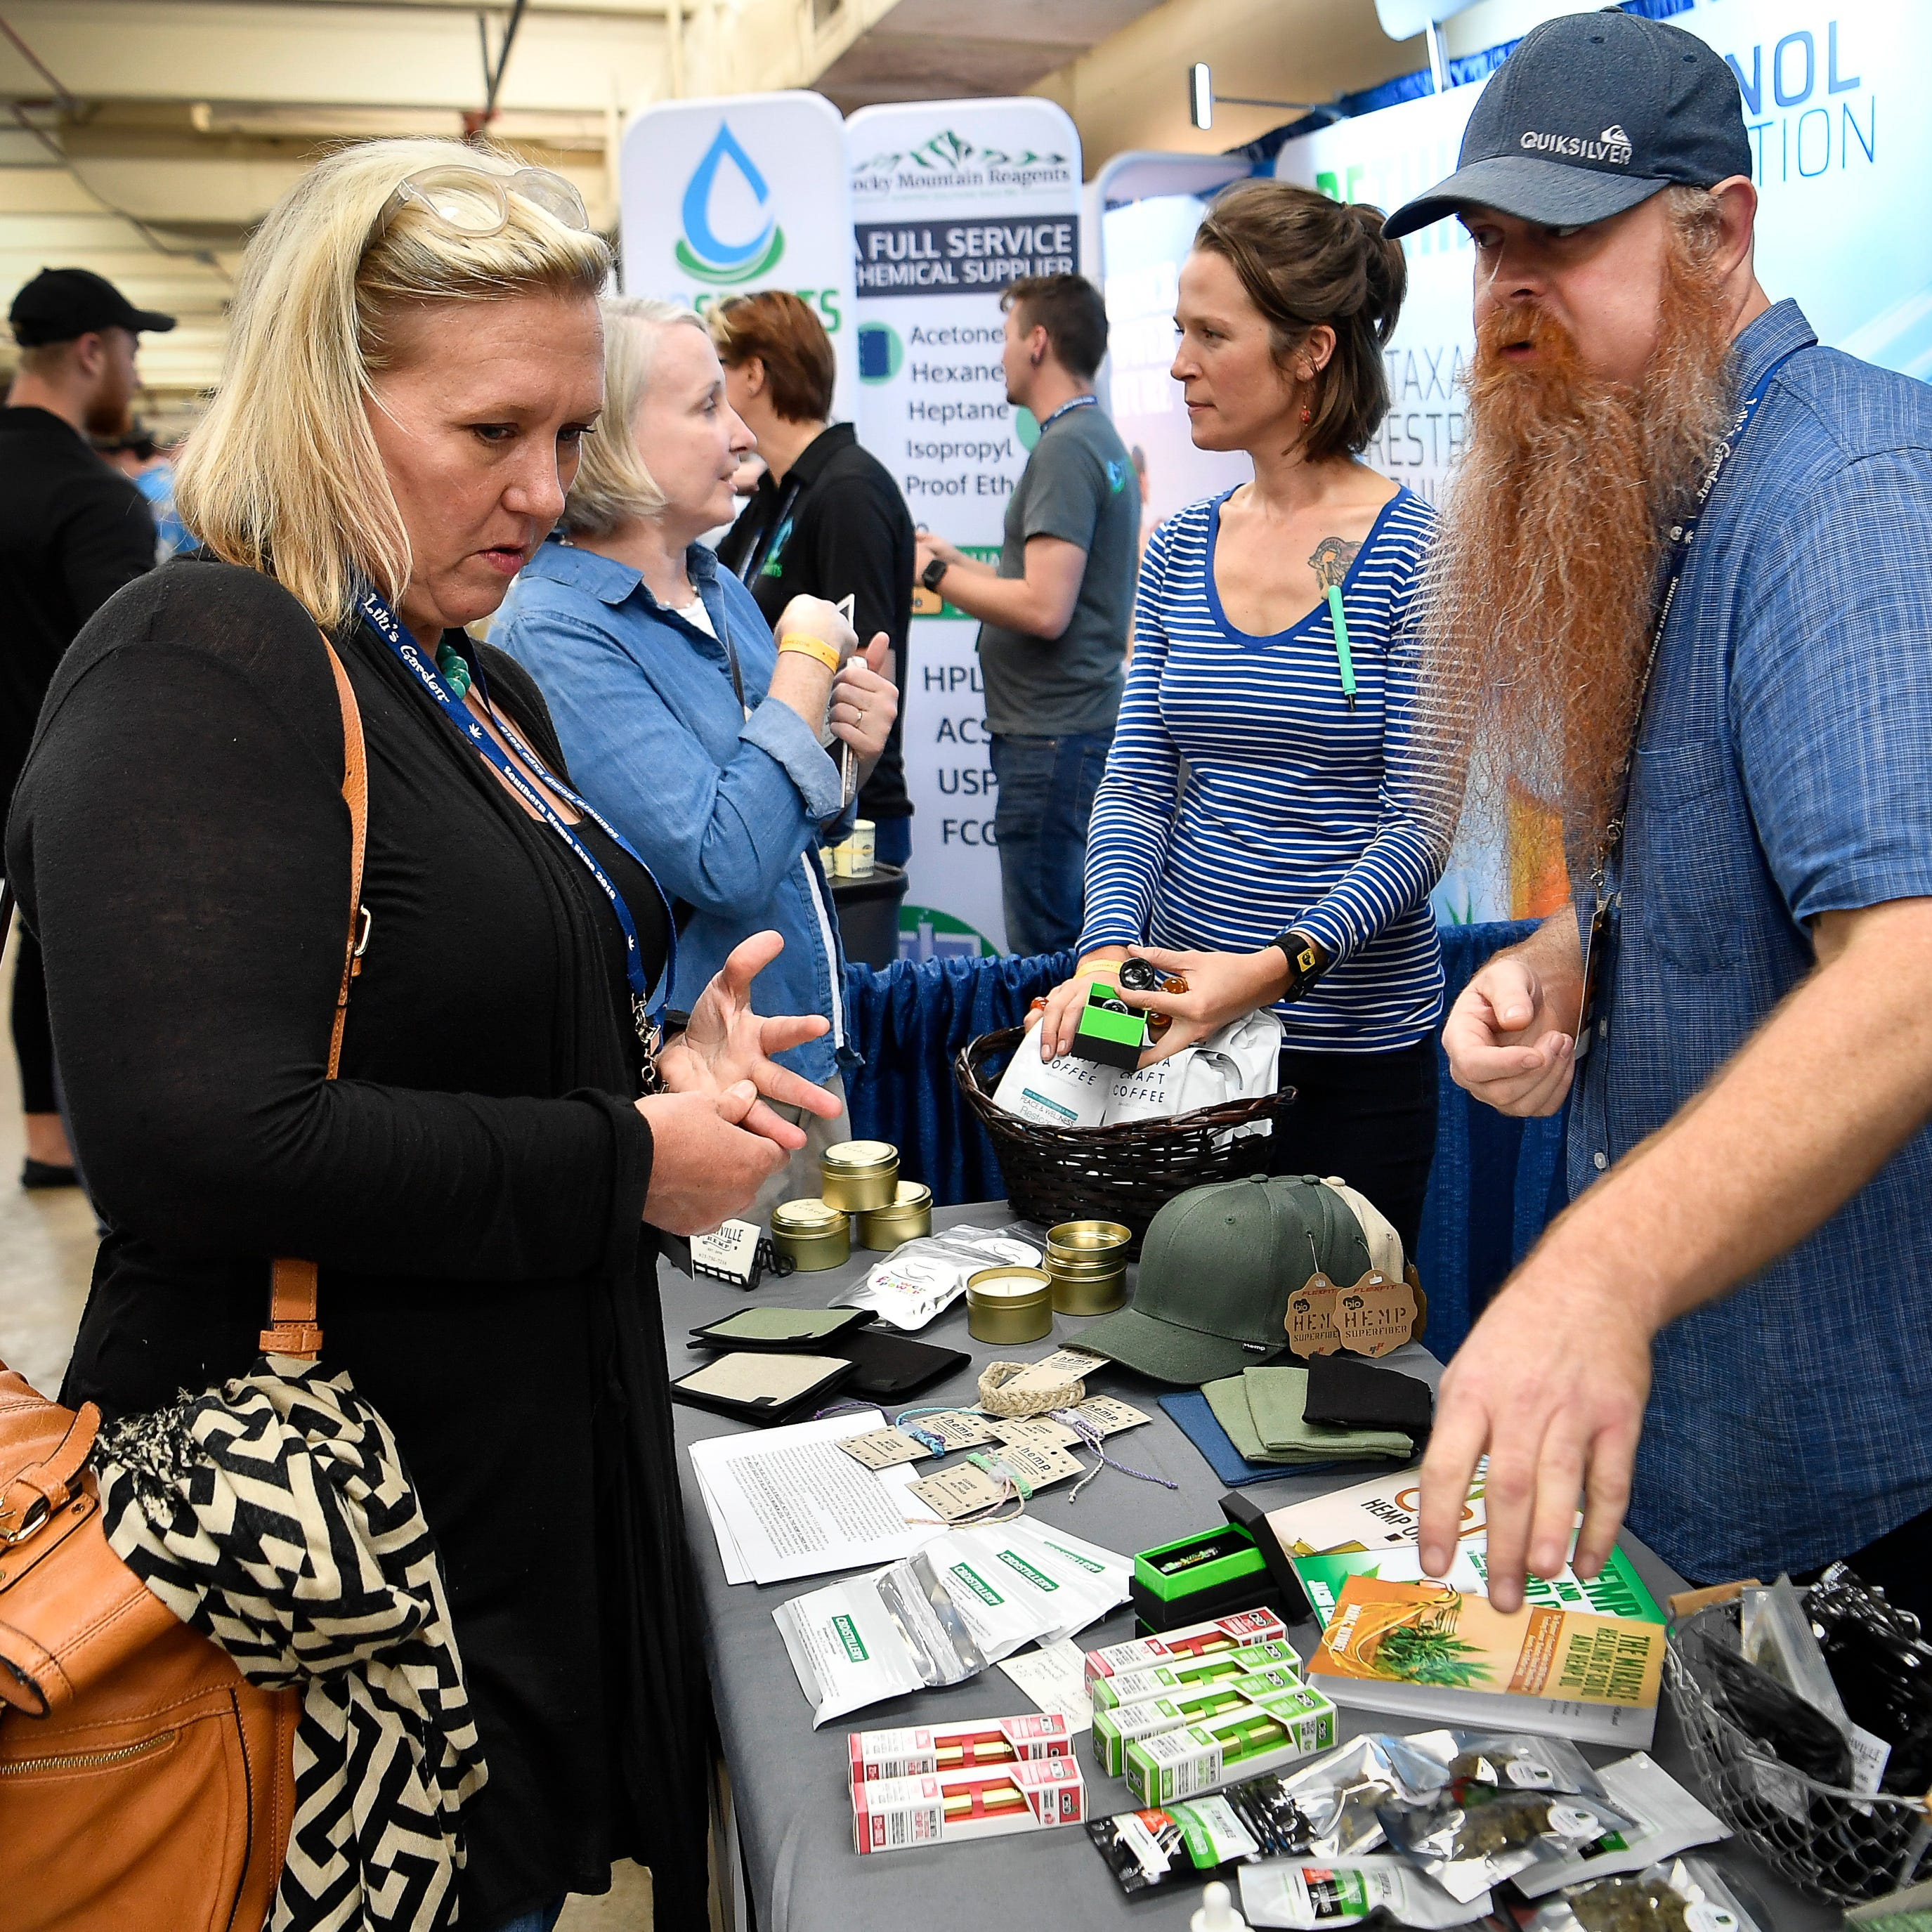 CBD: At Tennessee's first hemp expo, a 'sleeping giant' industry awakes